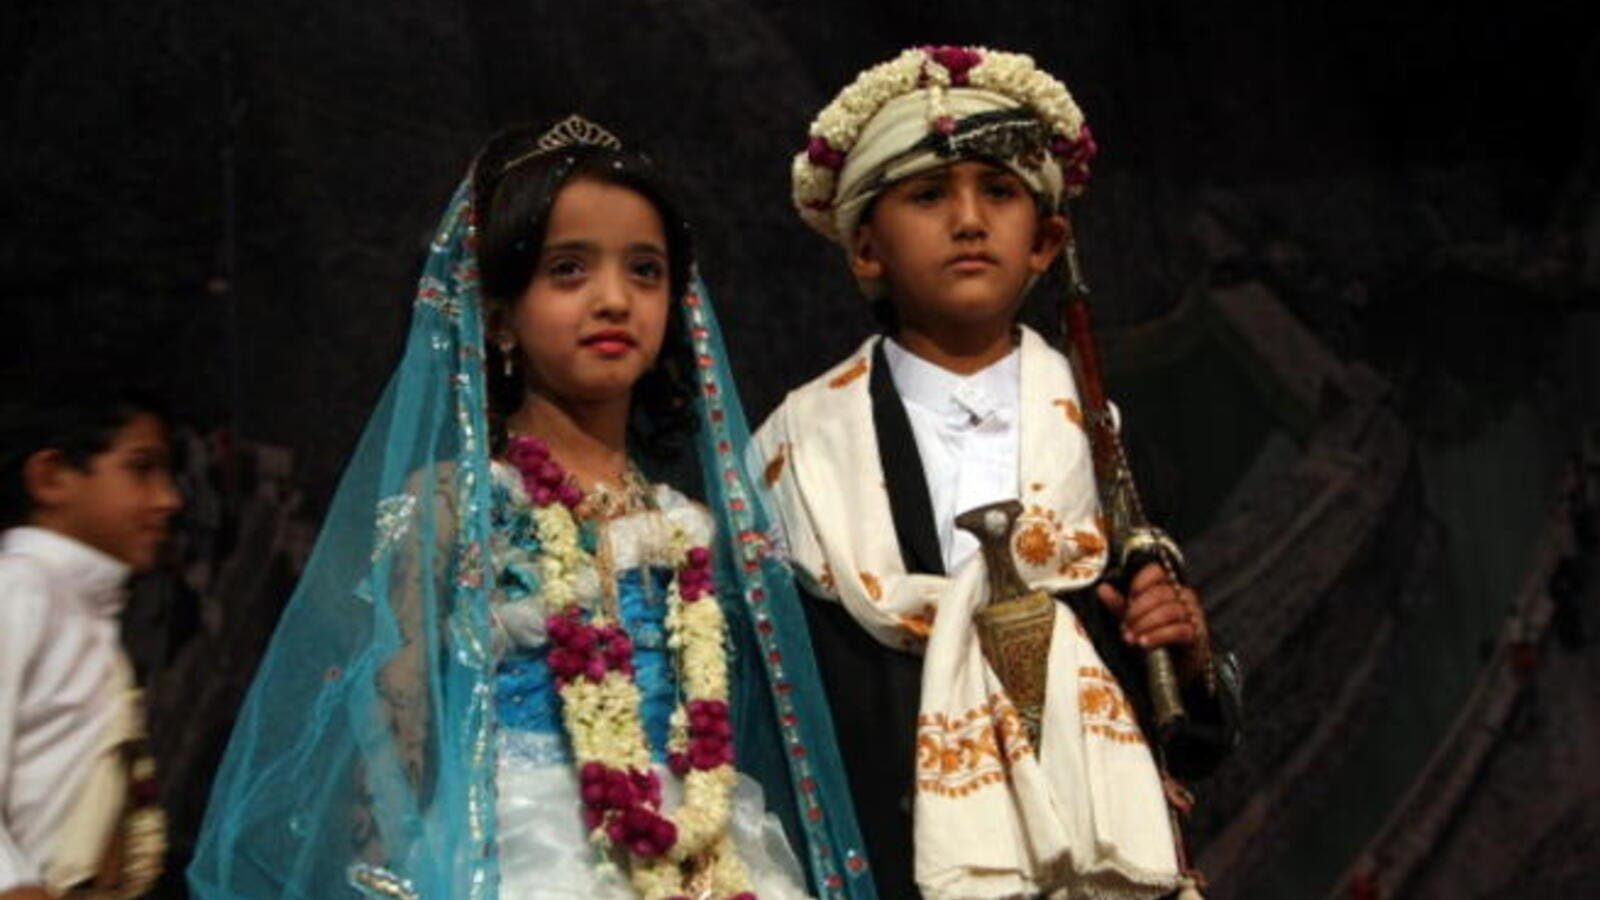 Yemeni children dressed in traditional wedding outfits (MOHAMMED HUWAIS/AFP/Getty Images)